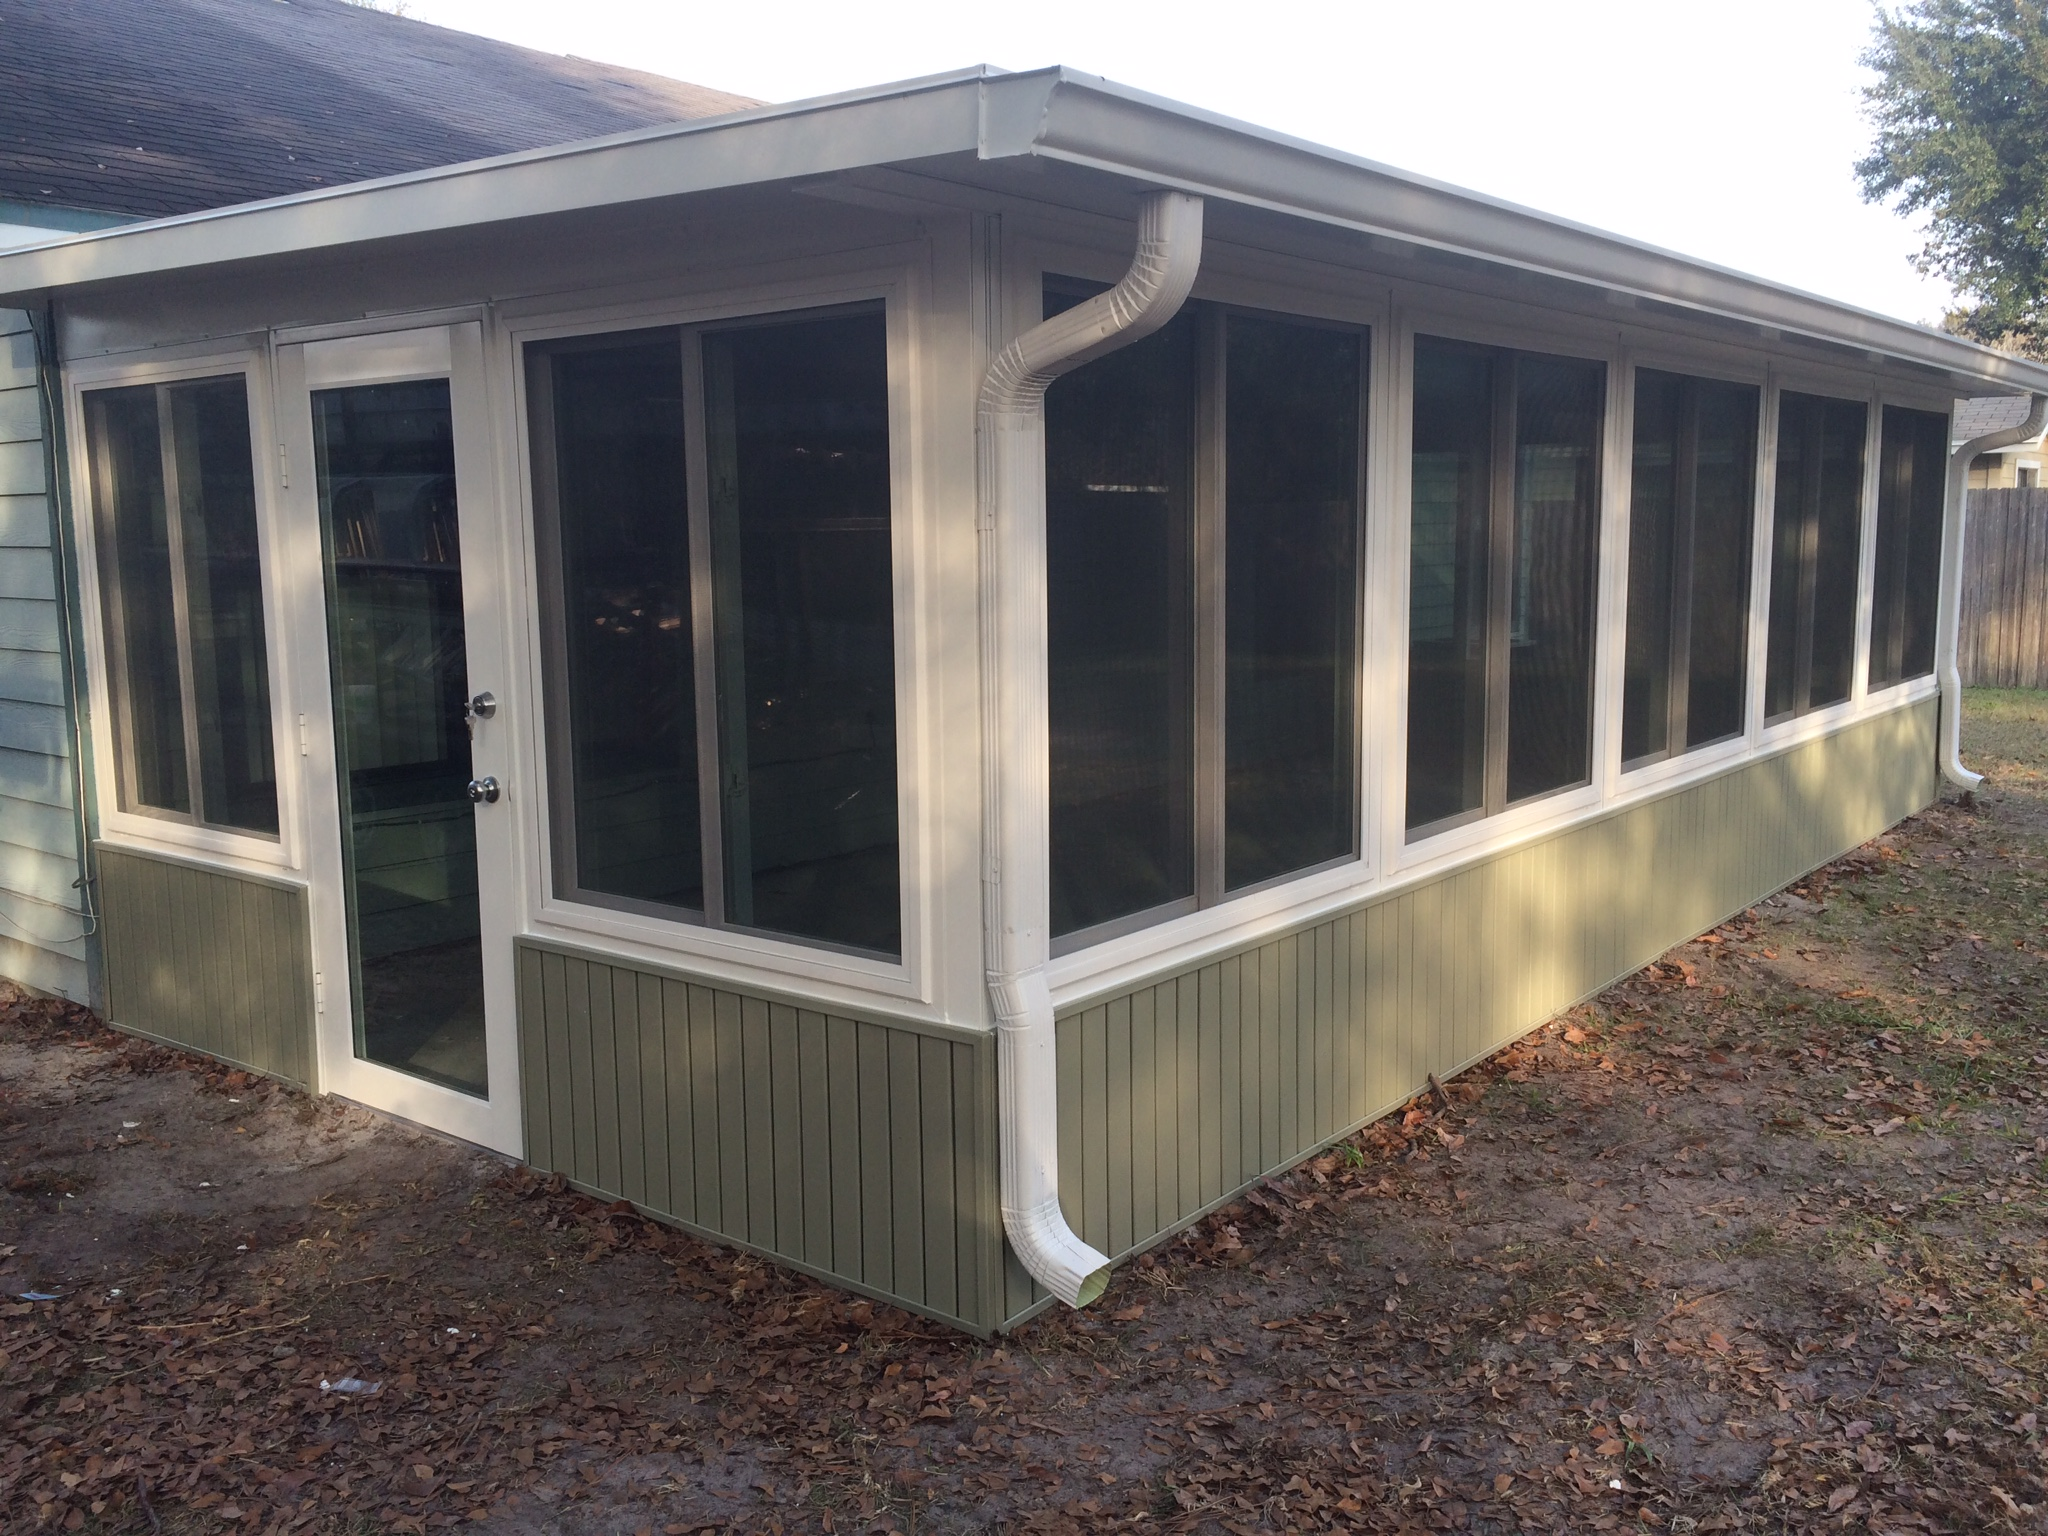 Sunroom Additions Amp Screen Enclosures Gallery M Daigle